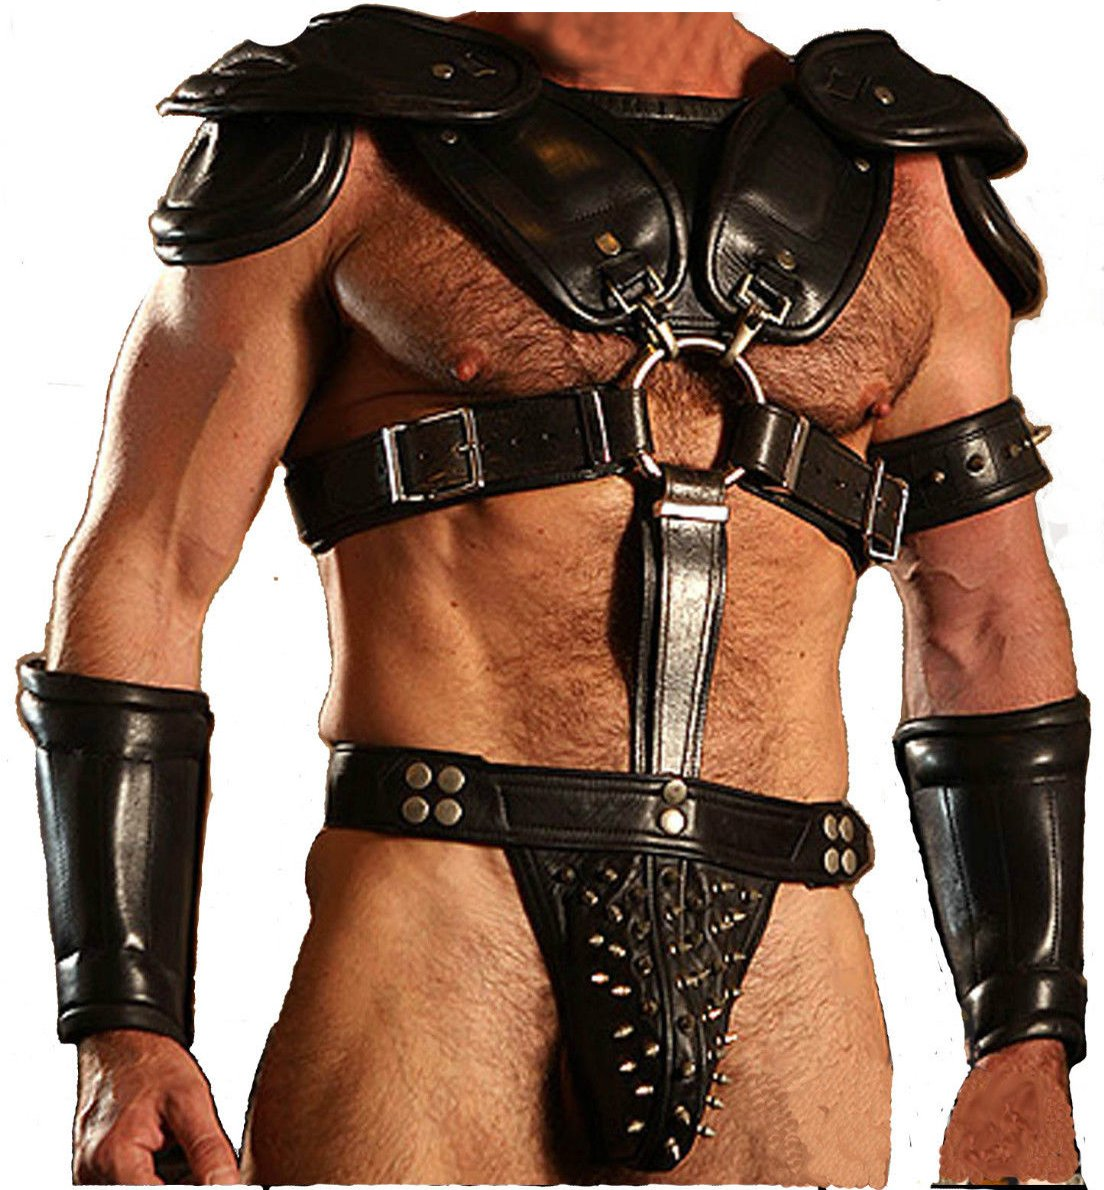 Real Black LEATHER ROMAN GLADIATOR SET MENS UNIFORM LARP GOTH STEAMPUNK - (WAR1) Waist 32'' Chest 38''